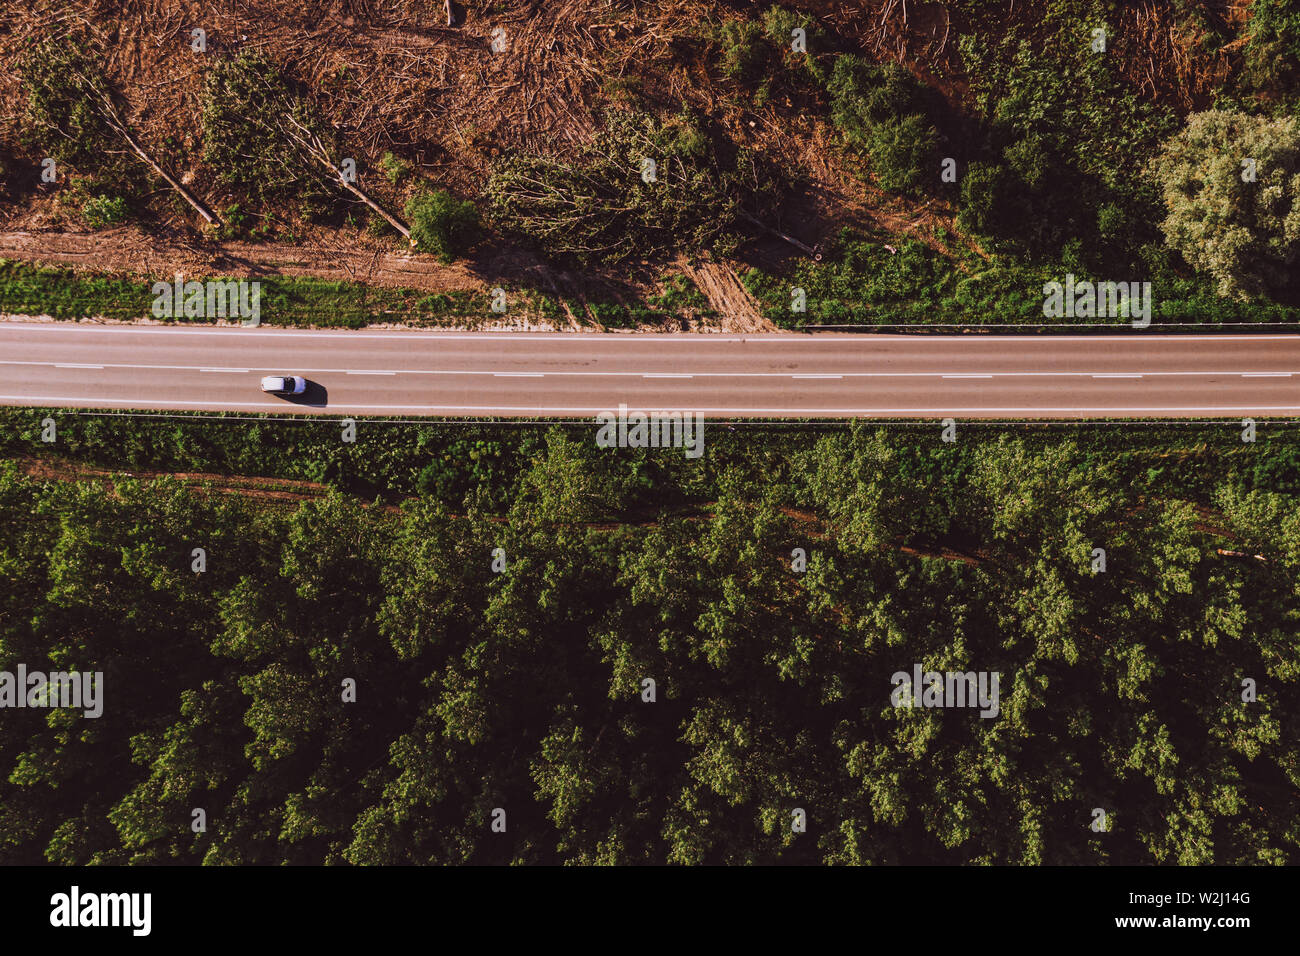 Aerial view of single white car on road through forest region with large cottonwood trees in summer afternoon Stock Photo